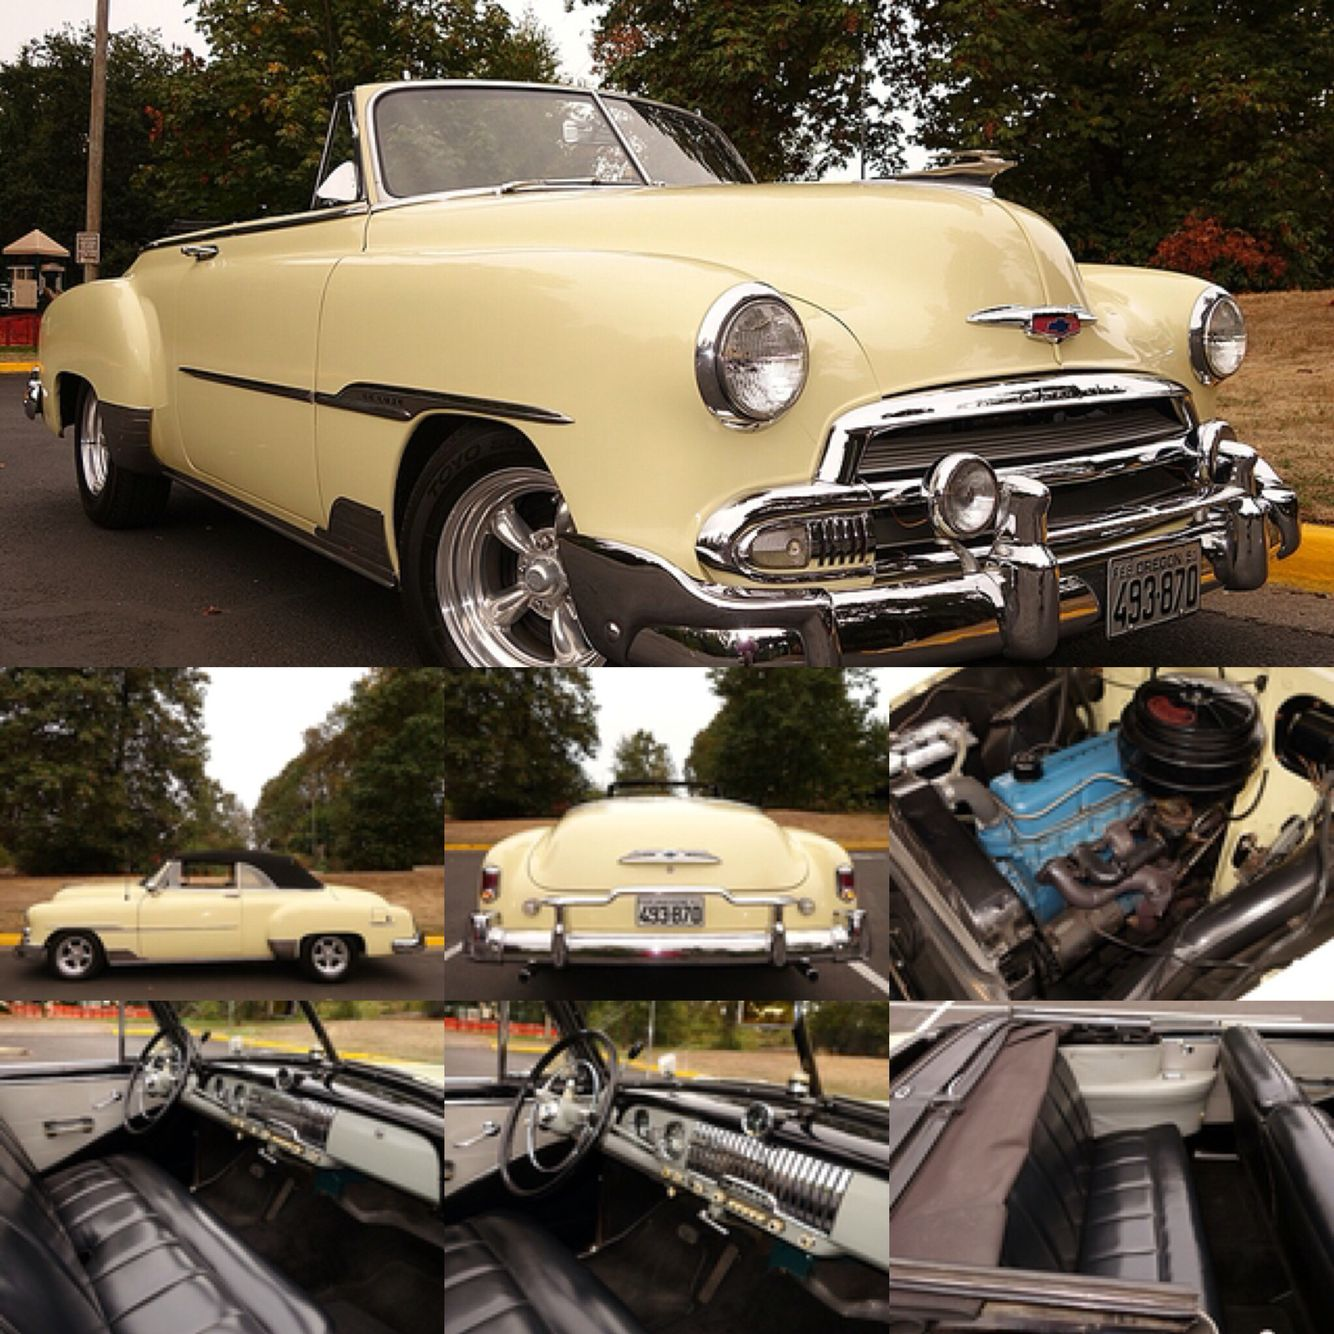 1951 Chevrolet Deluxe Convertible Model To 2134 This Outstanding Car Is Truly One Of